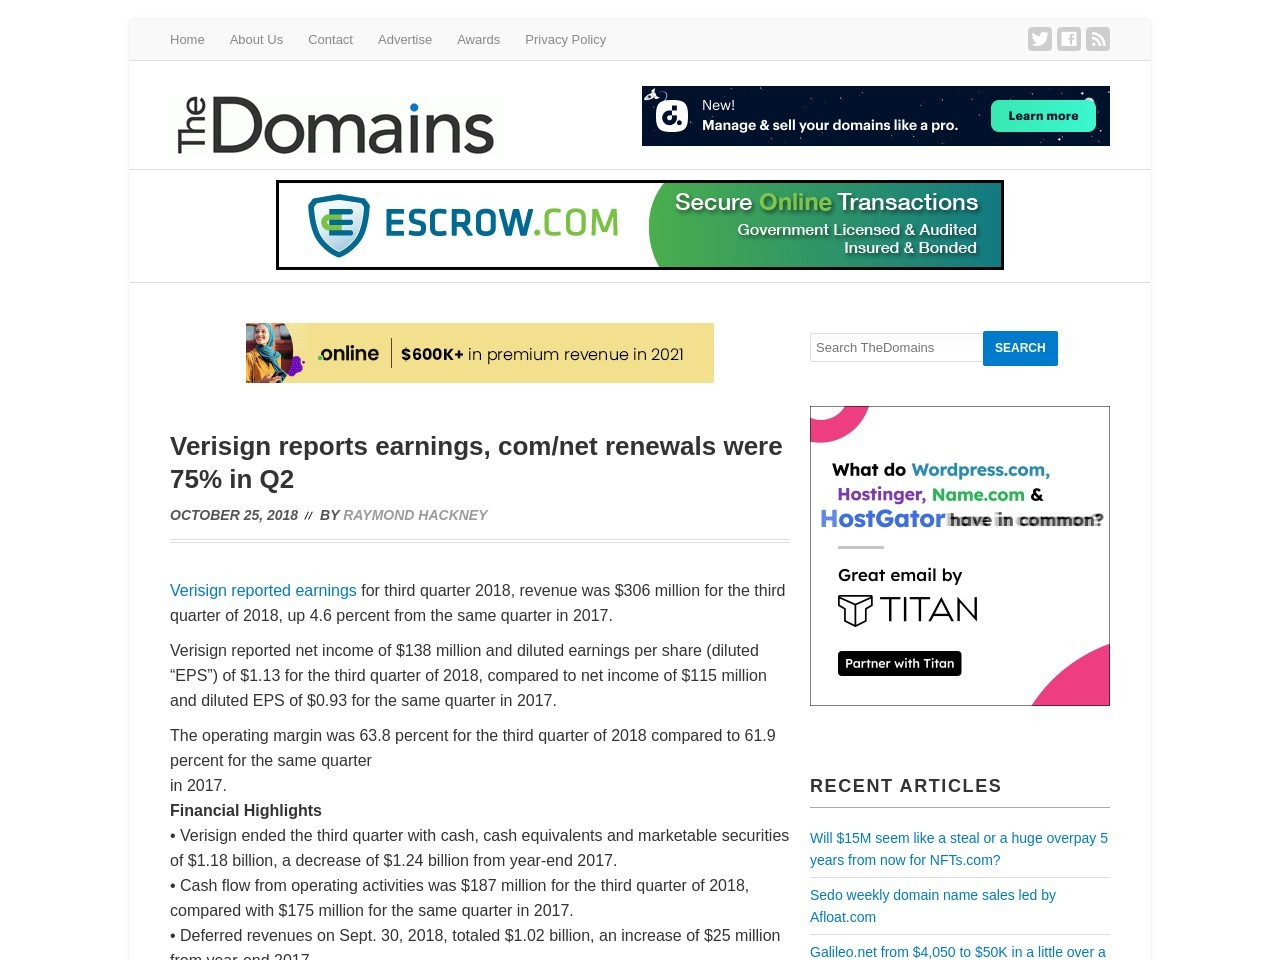 Verisign reports earnings, com/net renewals were 75% in Q2